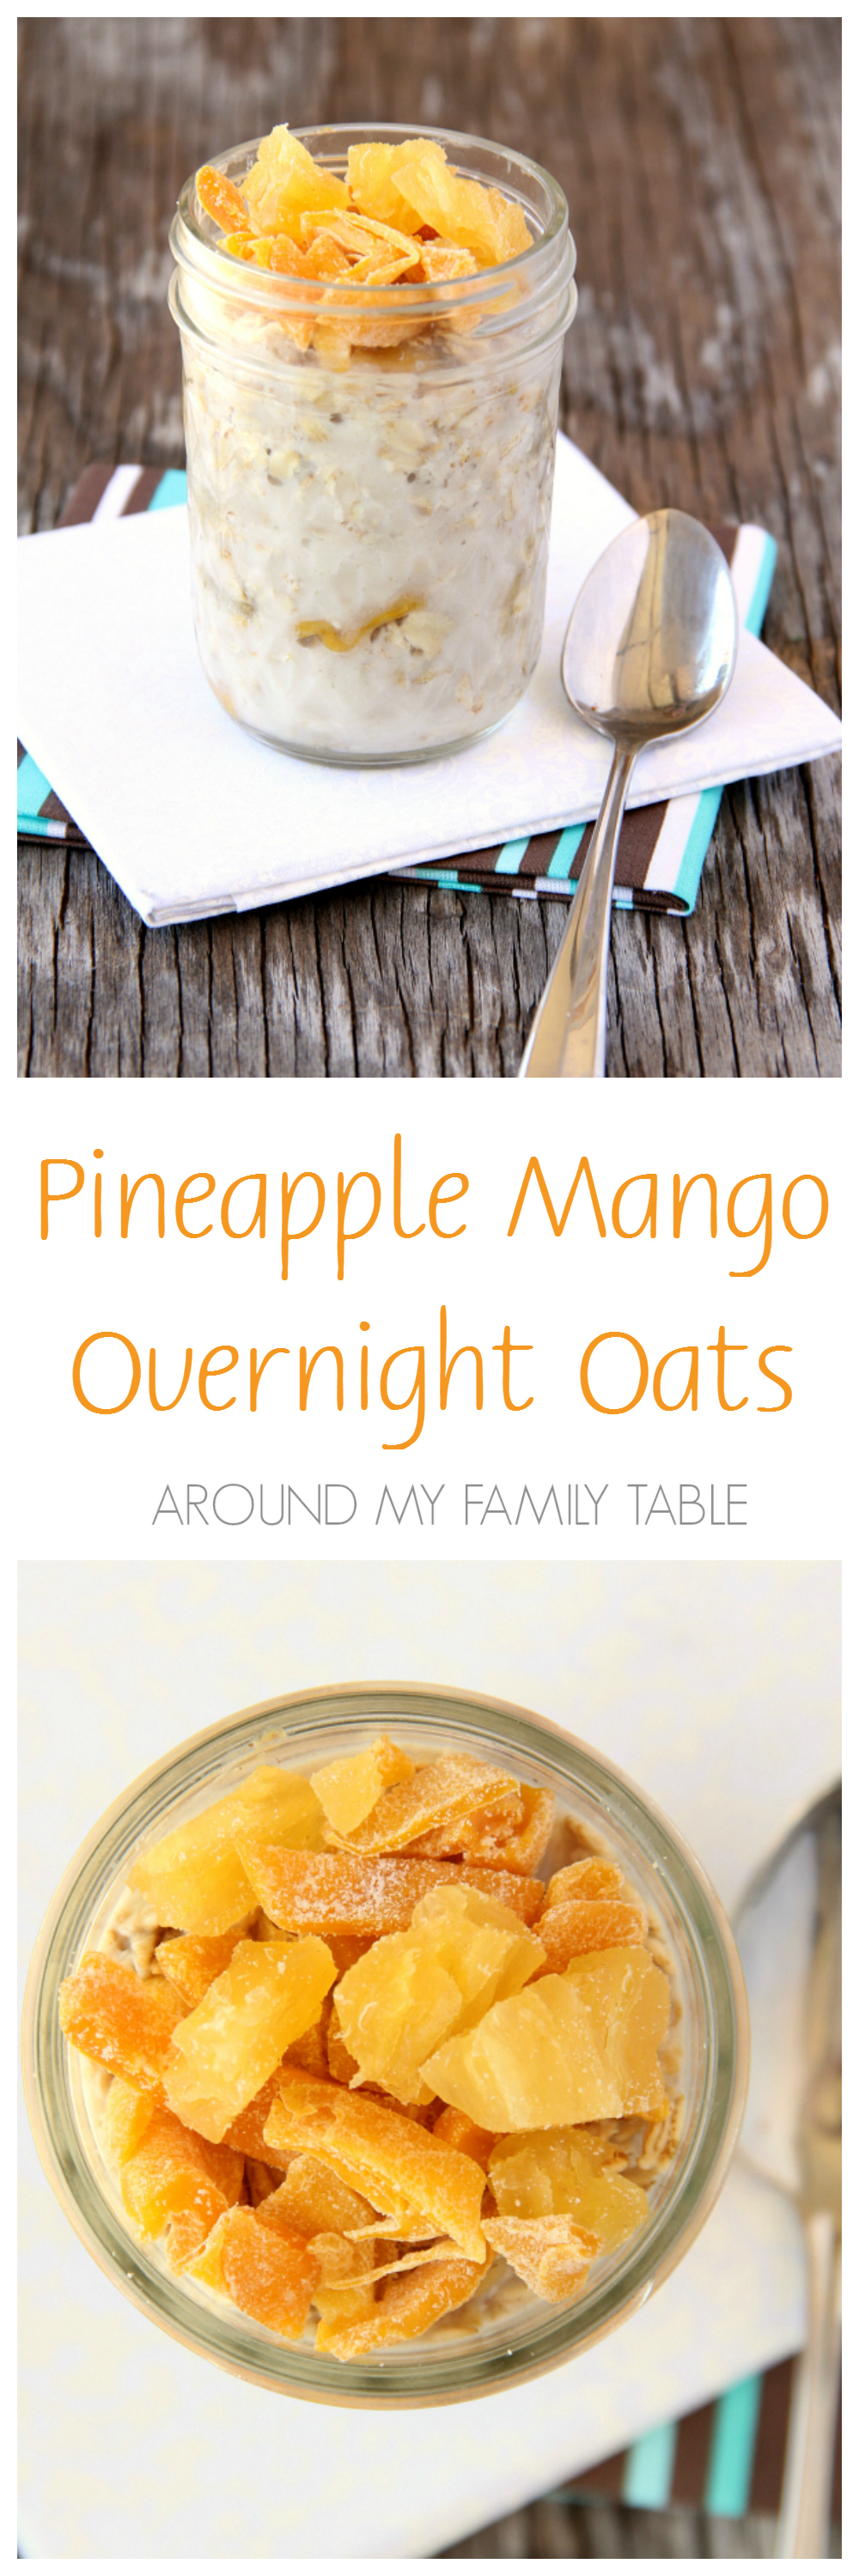 Make up a couple jars of Pineapple Mango Overnight Oats tonight for a quick and delicious breakfast tomorrow that's ready when you are.